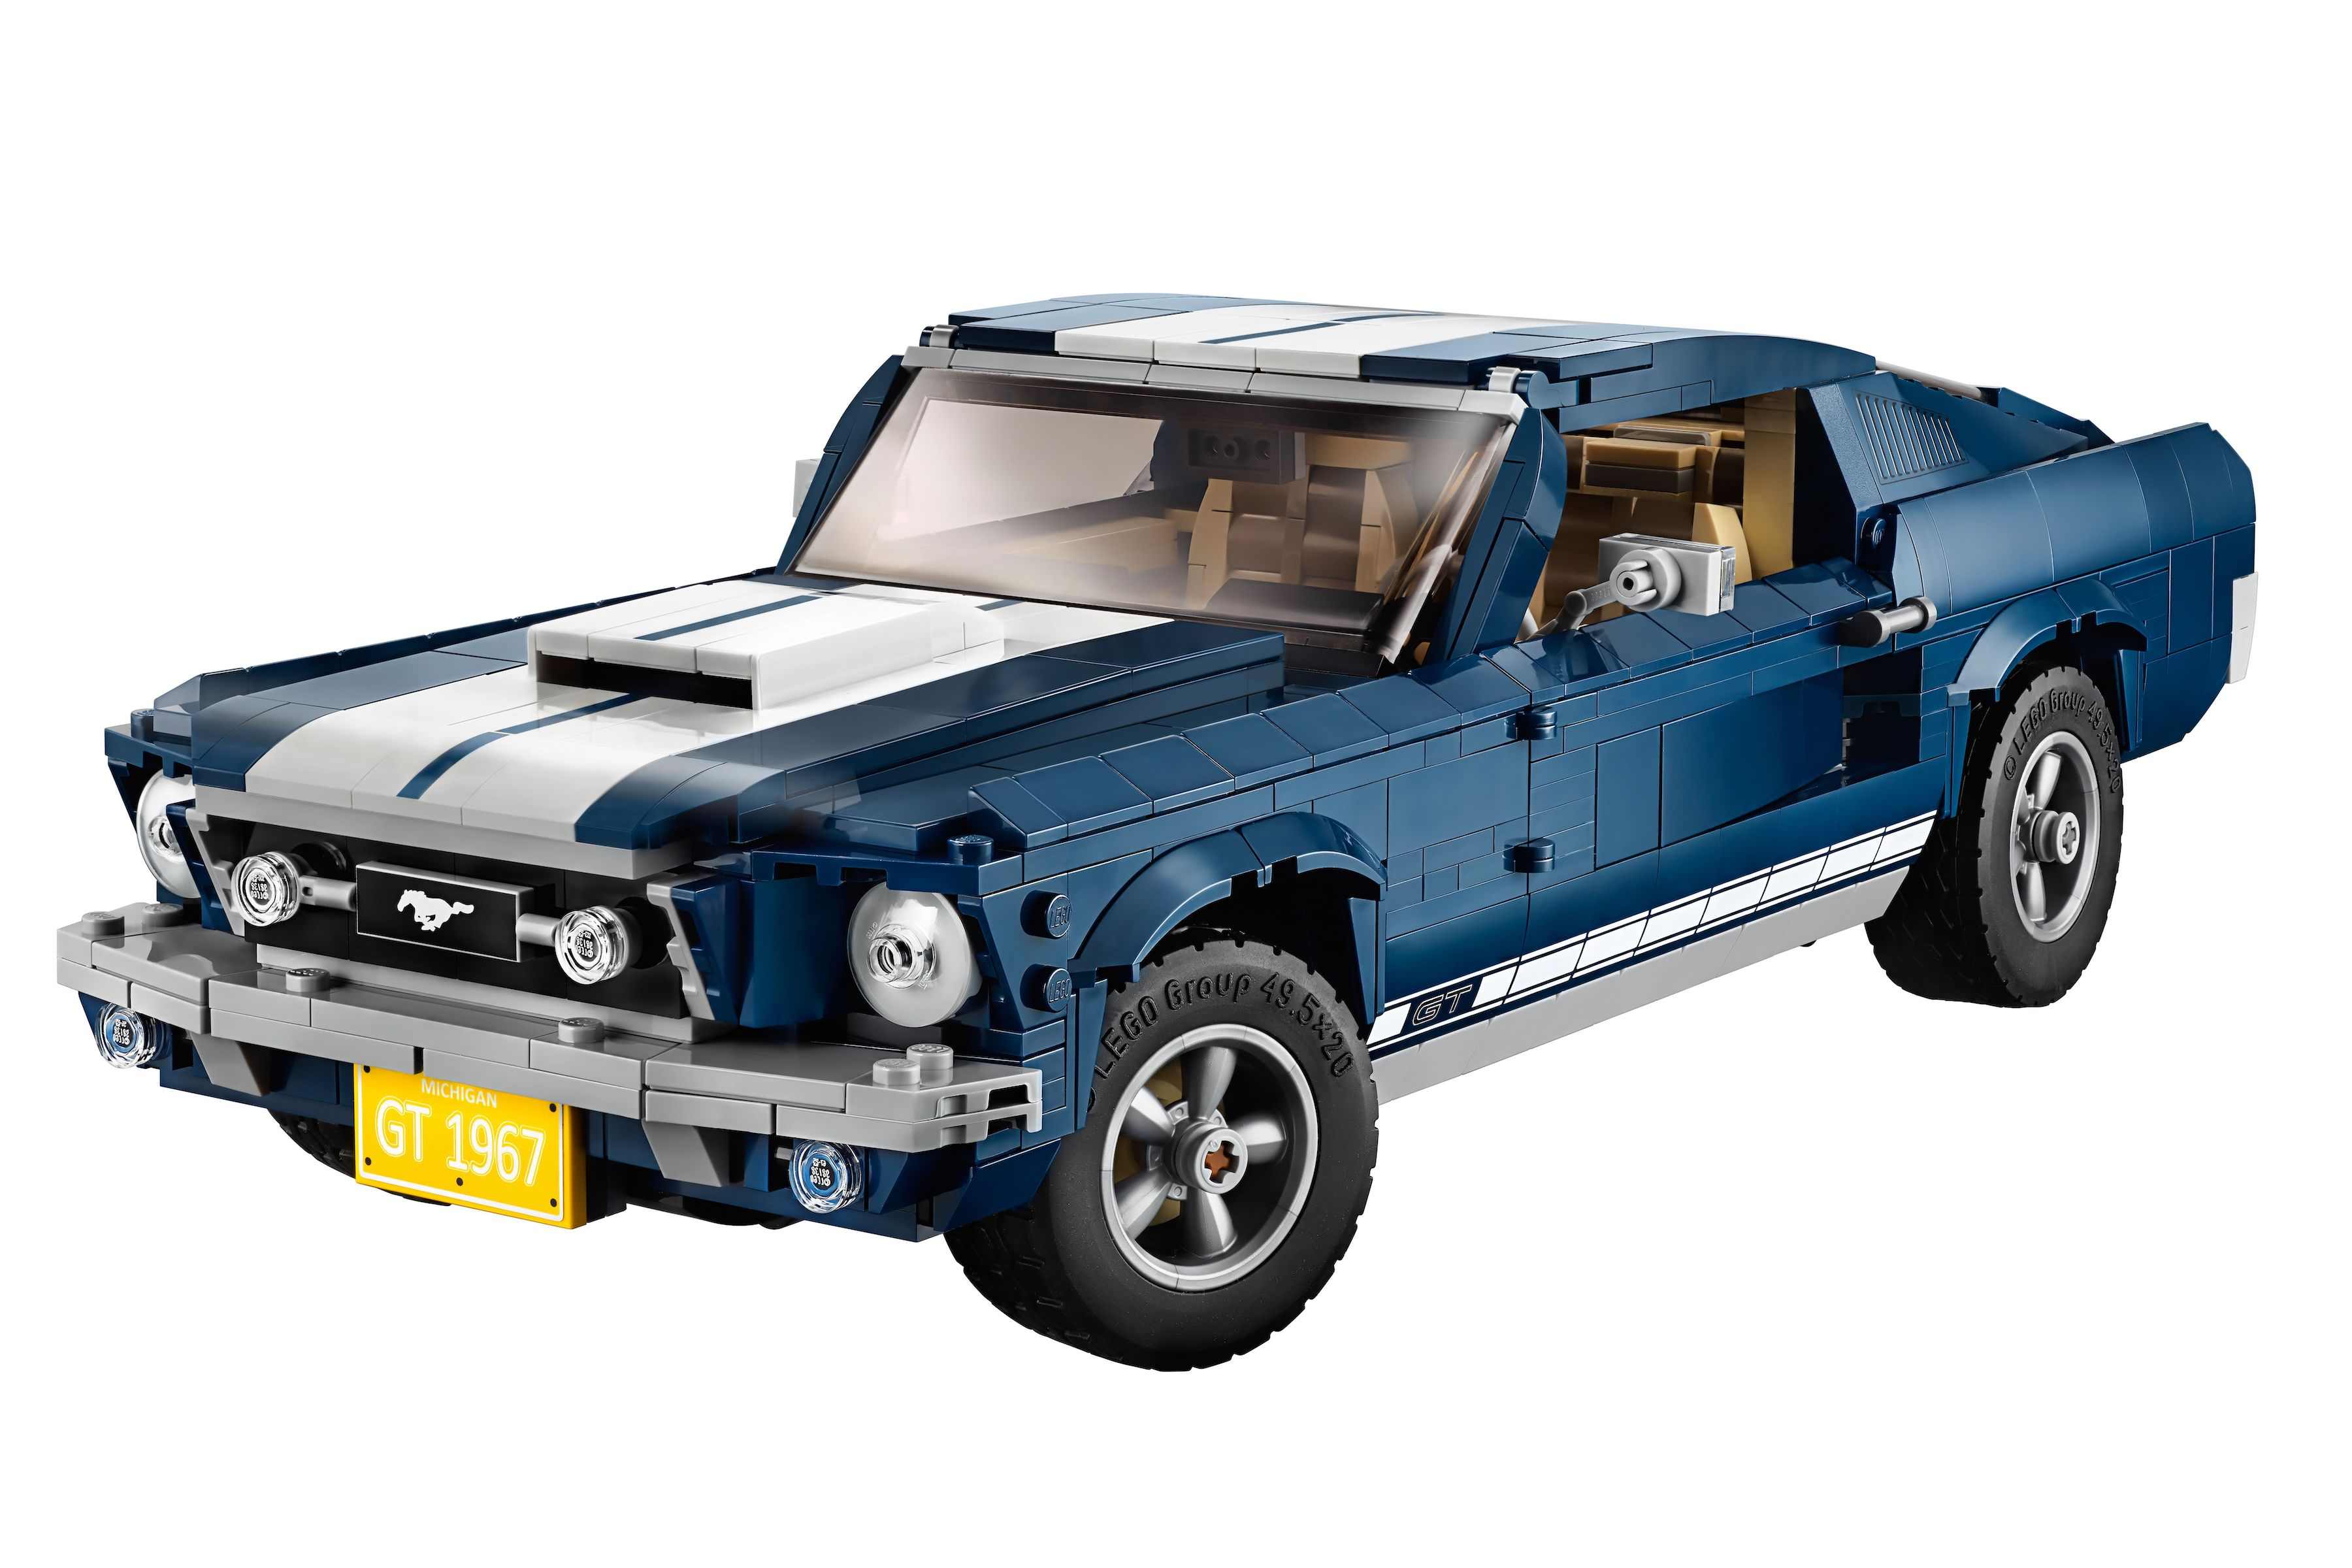 Lego's 1967 Ford Mustang kit challenges builders with 1,500 pieces